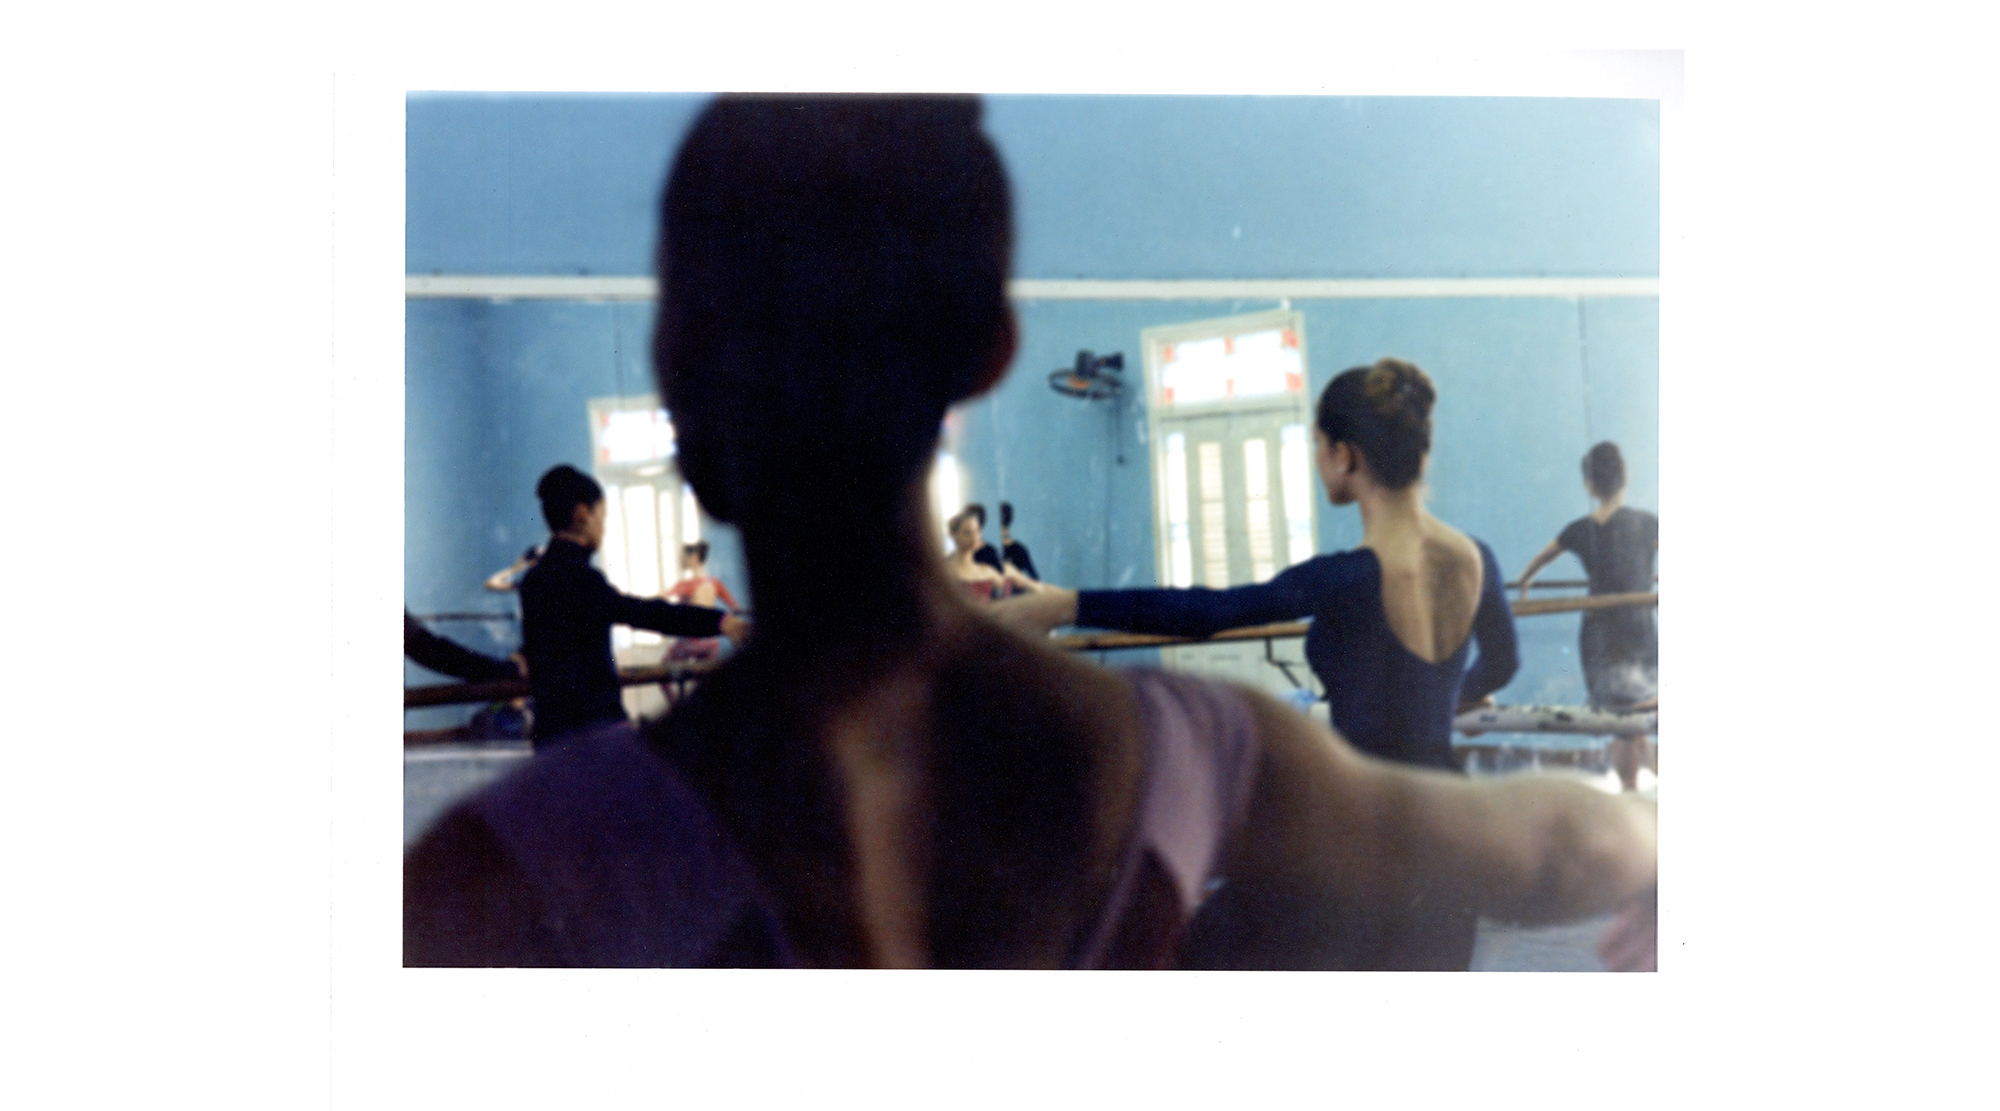 a photograph, shot from behind a dancer's head, captures a busy rehearsal room